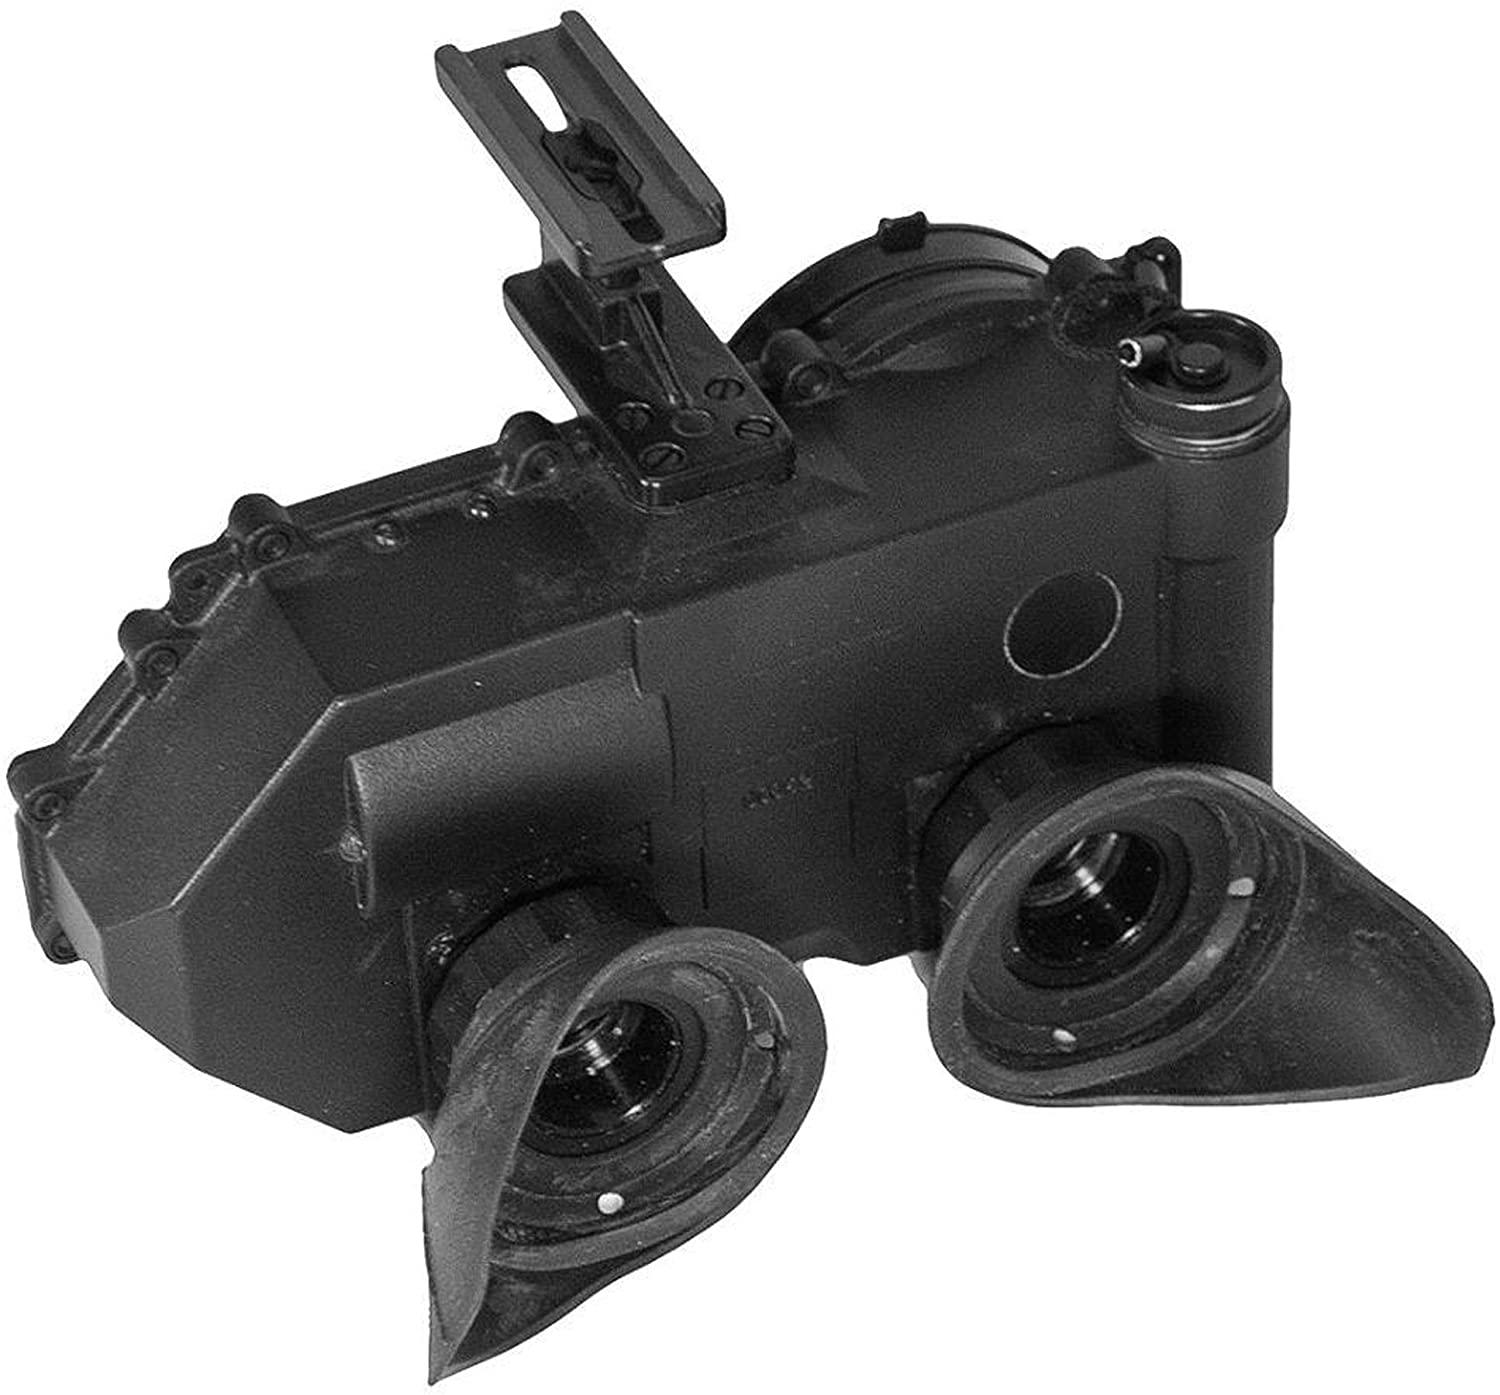 BelOMO NVG-14 Gen 2+ Night Vision Goggles with Headgear